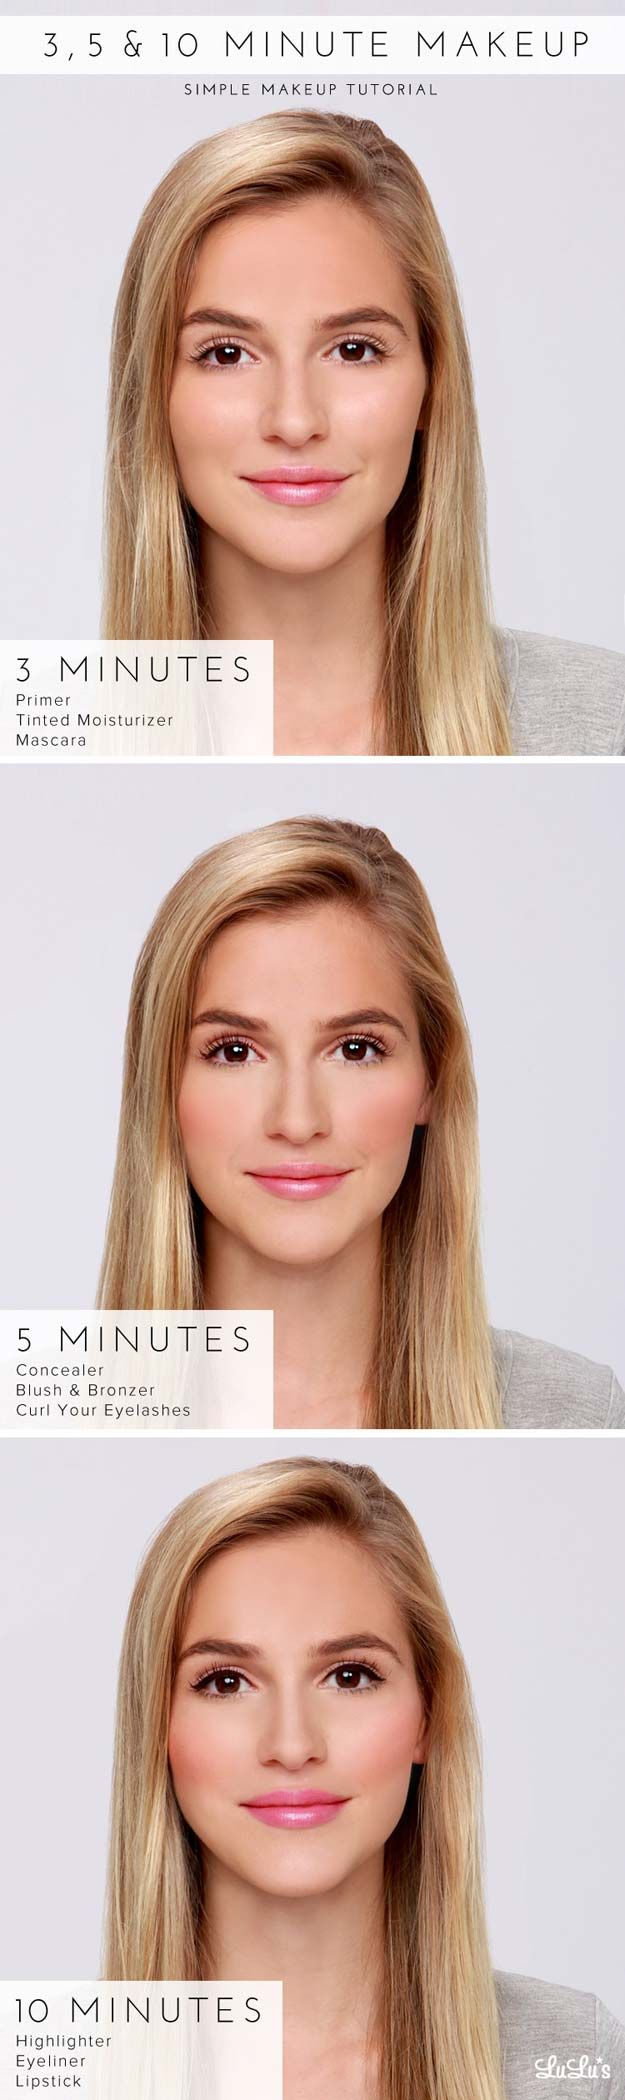 Best Makeup Tutorials for Teens -How-To: 3, 5 & 10 Minute Makeup Tutorial - Easy Makeup Ideas for Beginners - Step by Step Tutorials for Foundation, Eye Shadow, Lipstick, Cheeks, Contour, Eyebrows and Eyes - Awesome Makeup Hacks and Tips for Simple DIY Beauty - Day and Evening Looks http://diyprojectsforteens.com/makeup-tutorials-teens